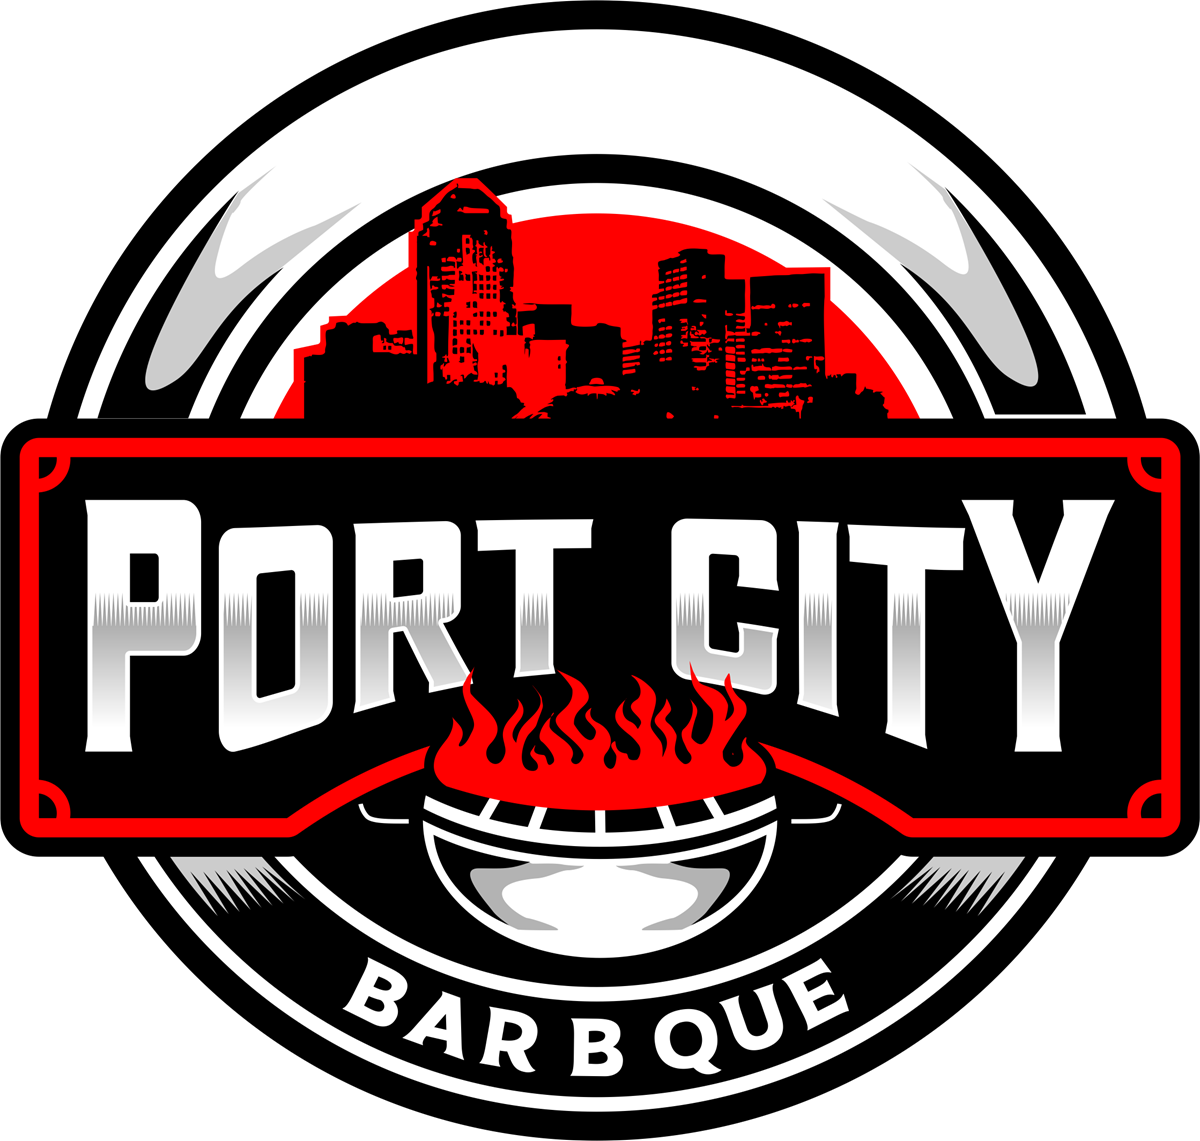 Port City Barbecue - Homepage